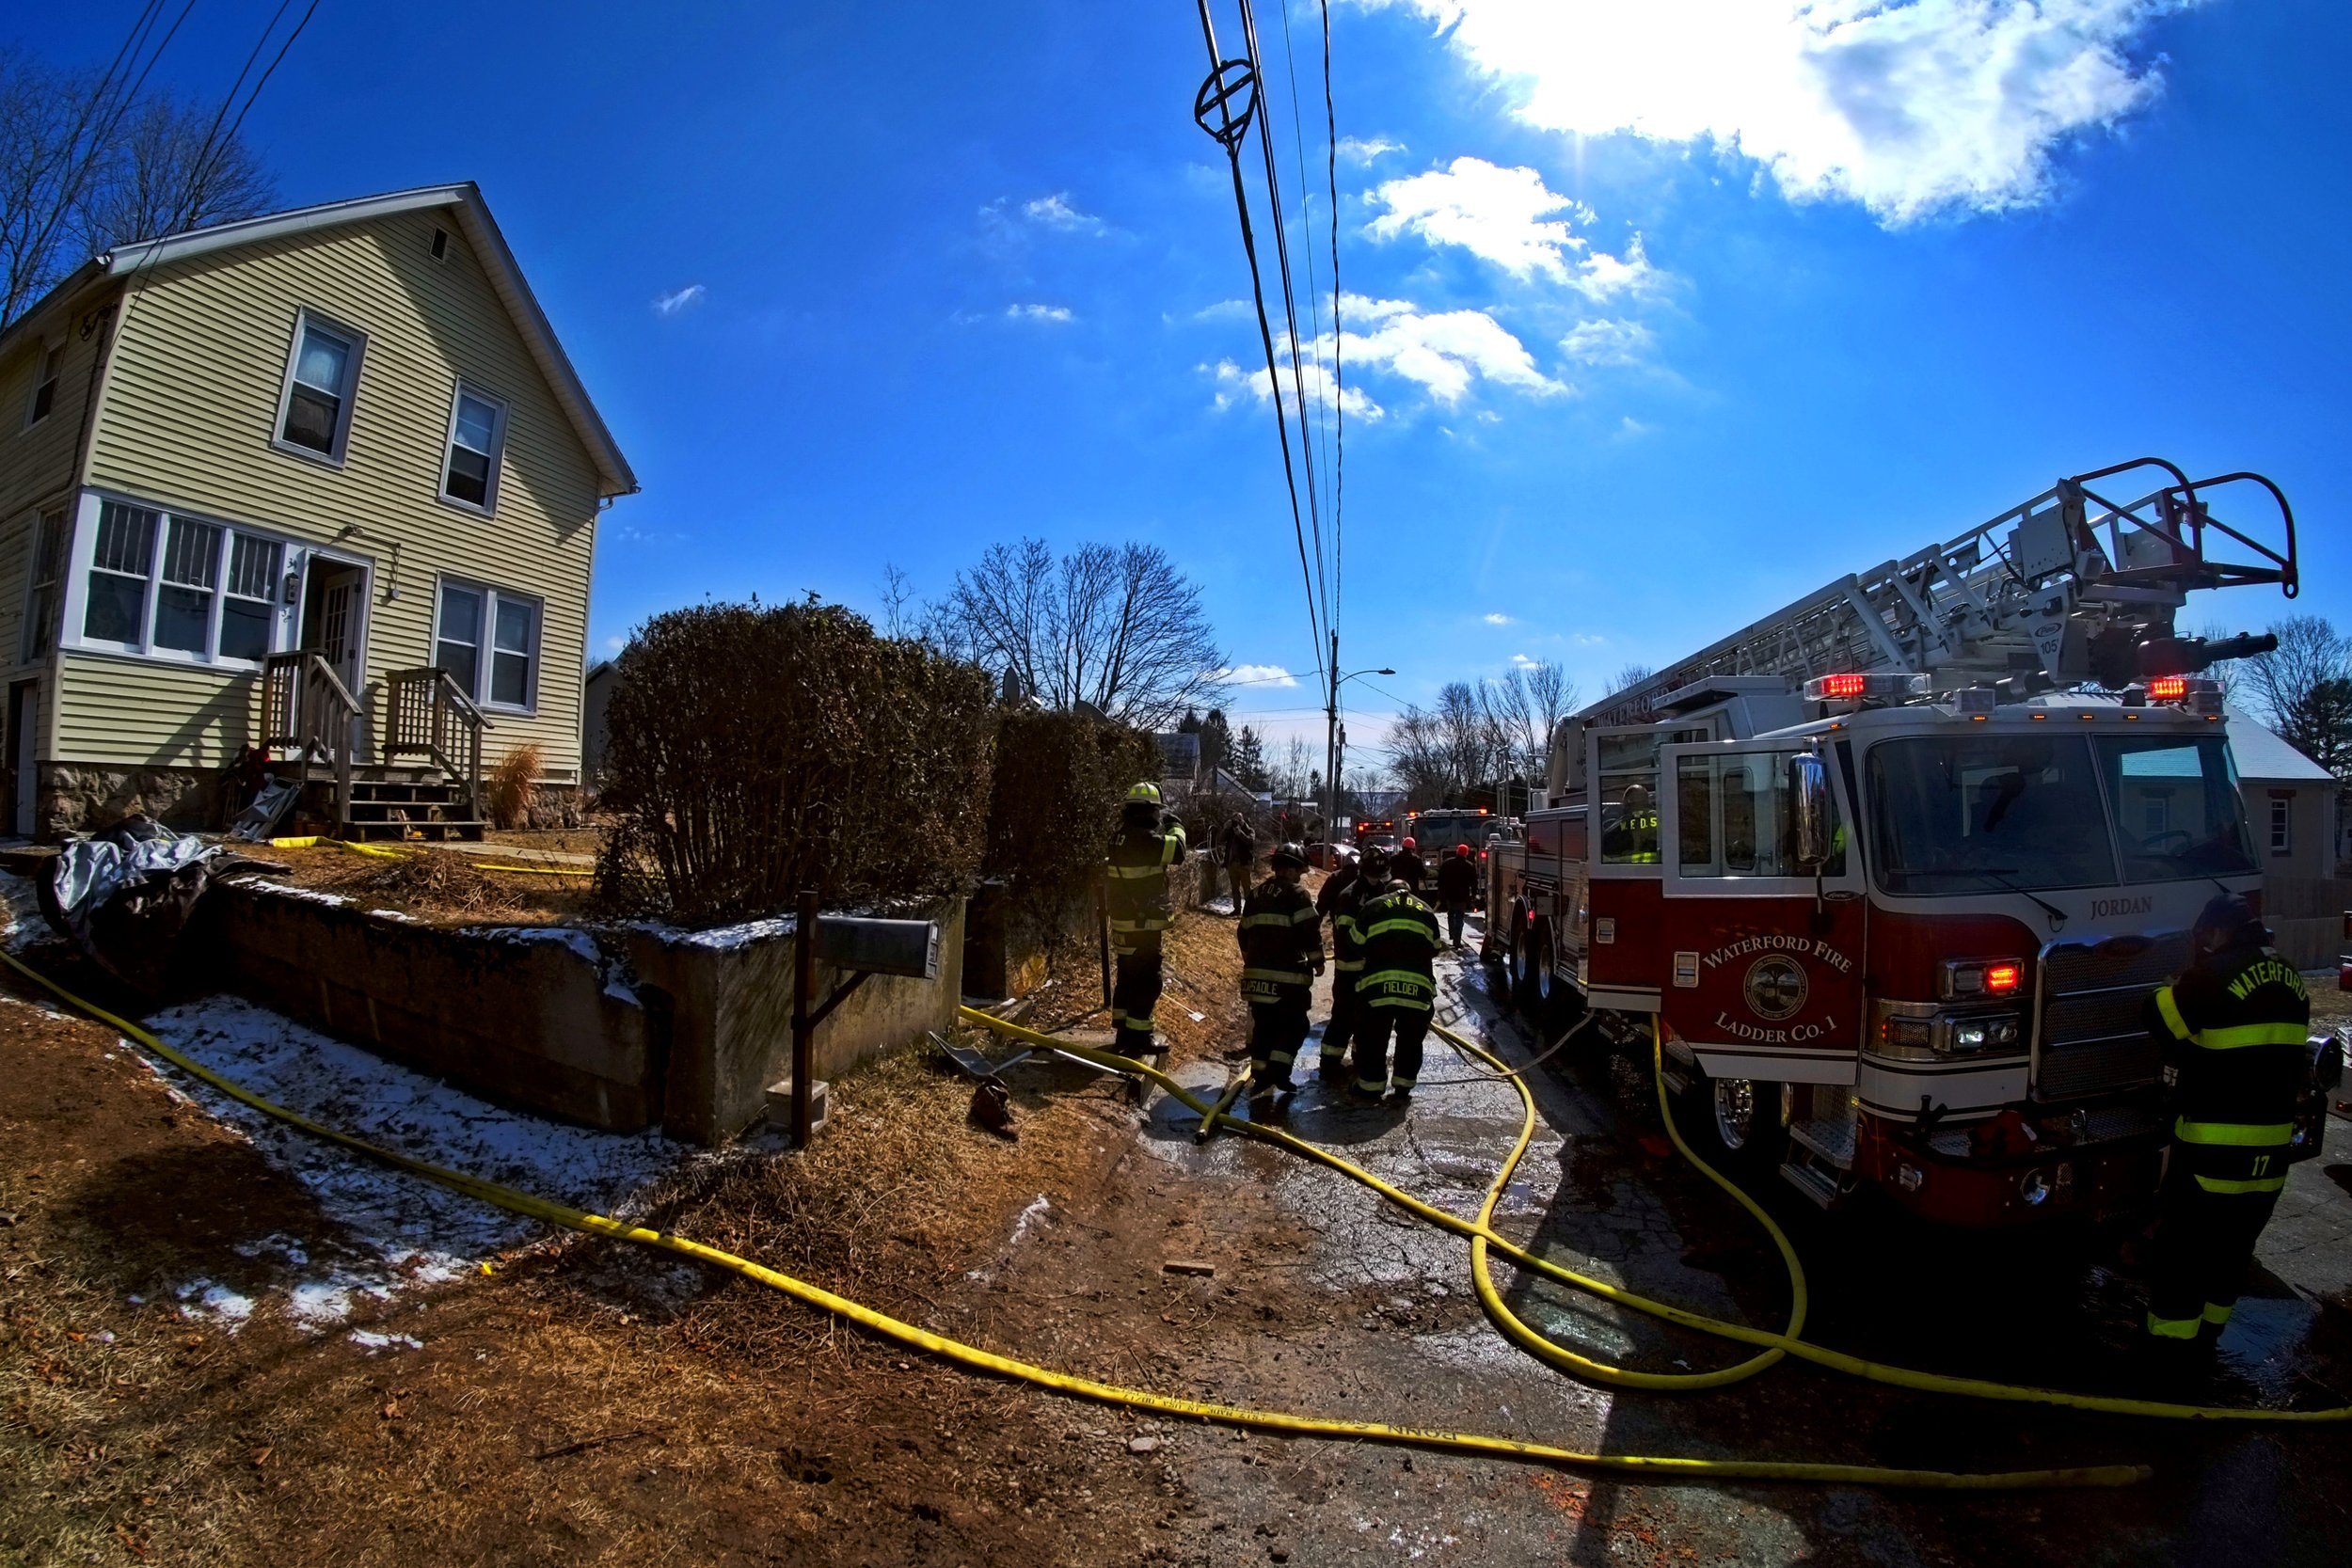 20190228_Waterford_Cohanzie_Structure_Fire_32_Vivian_St_x0181v2.jpg